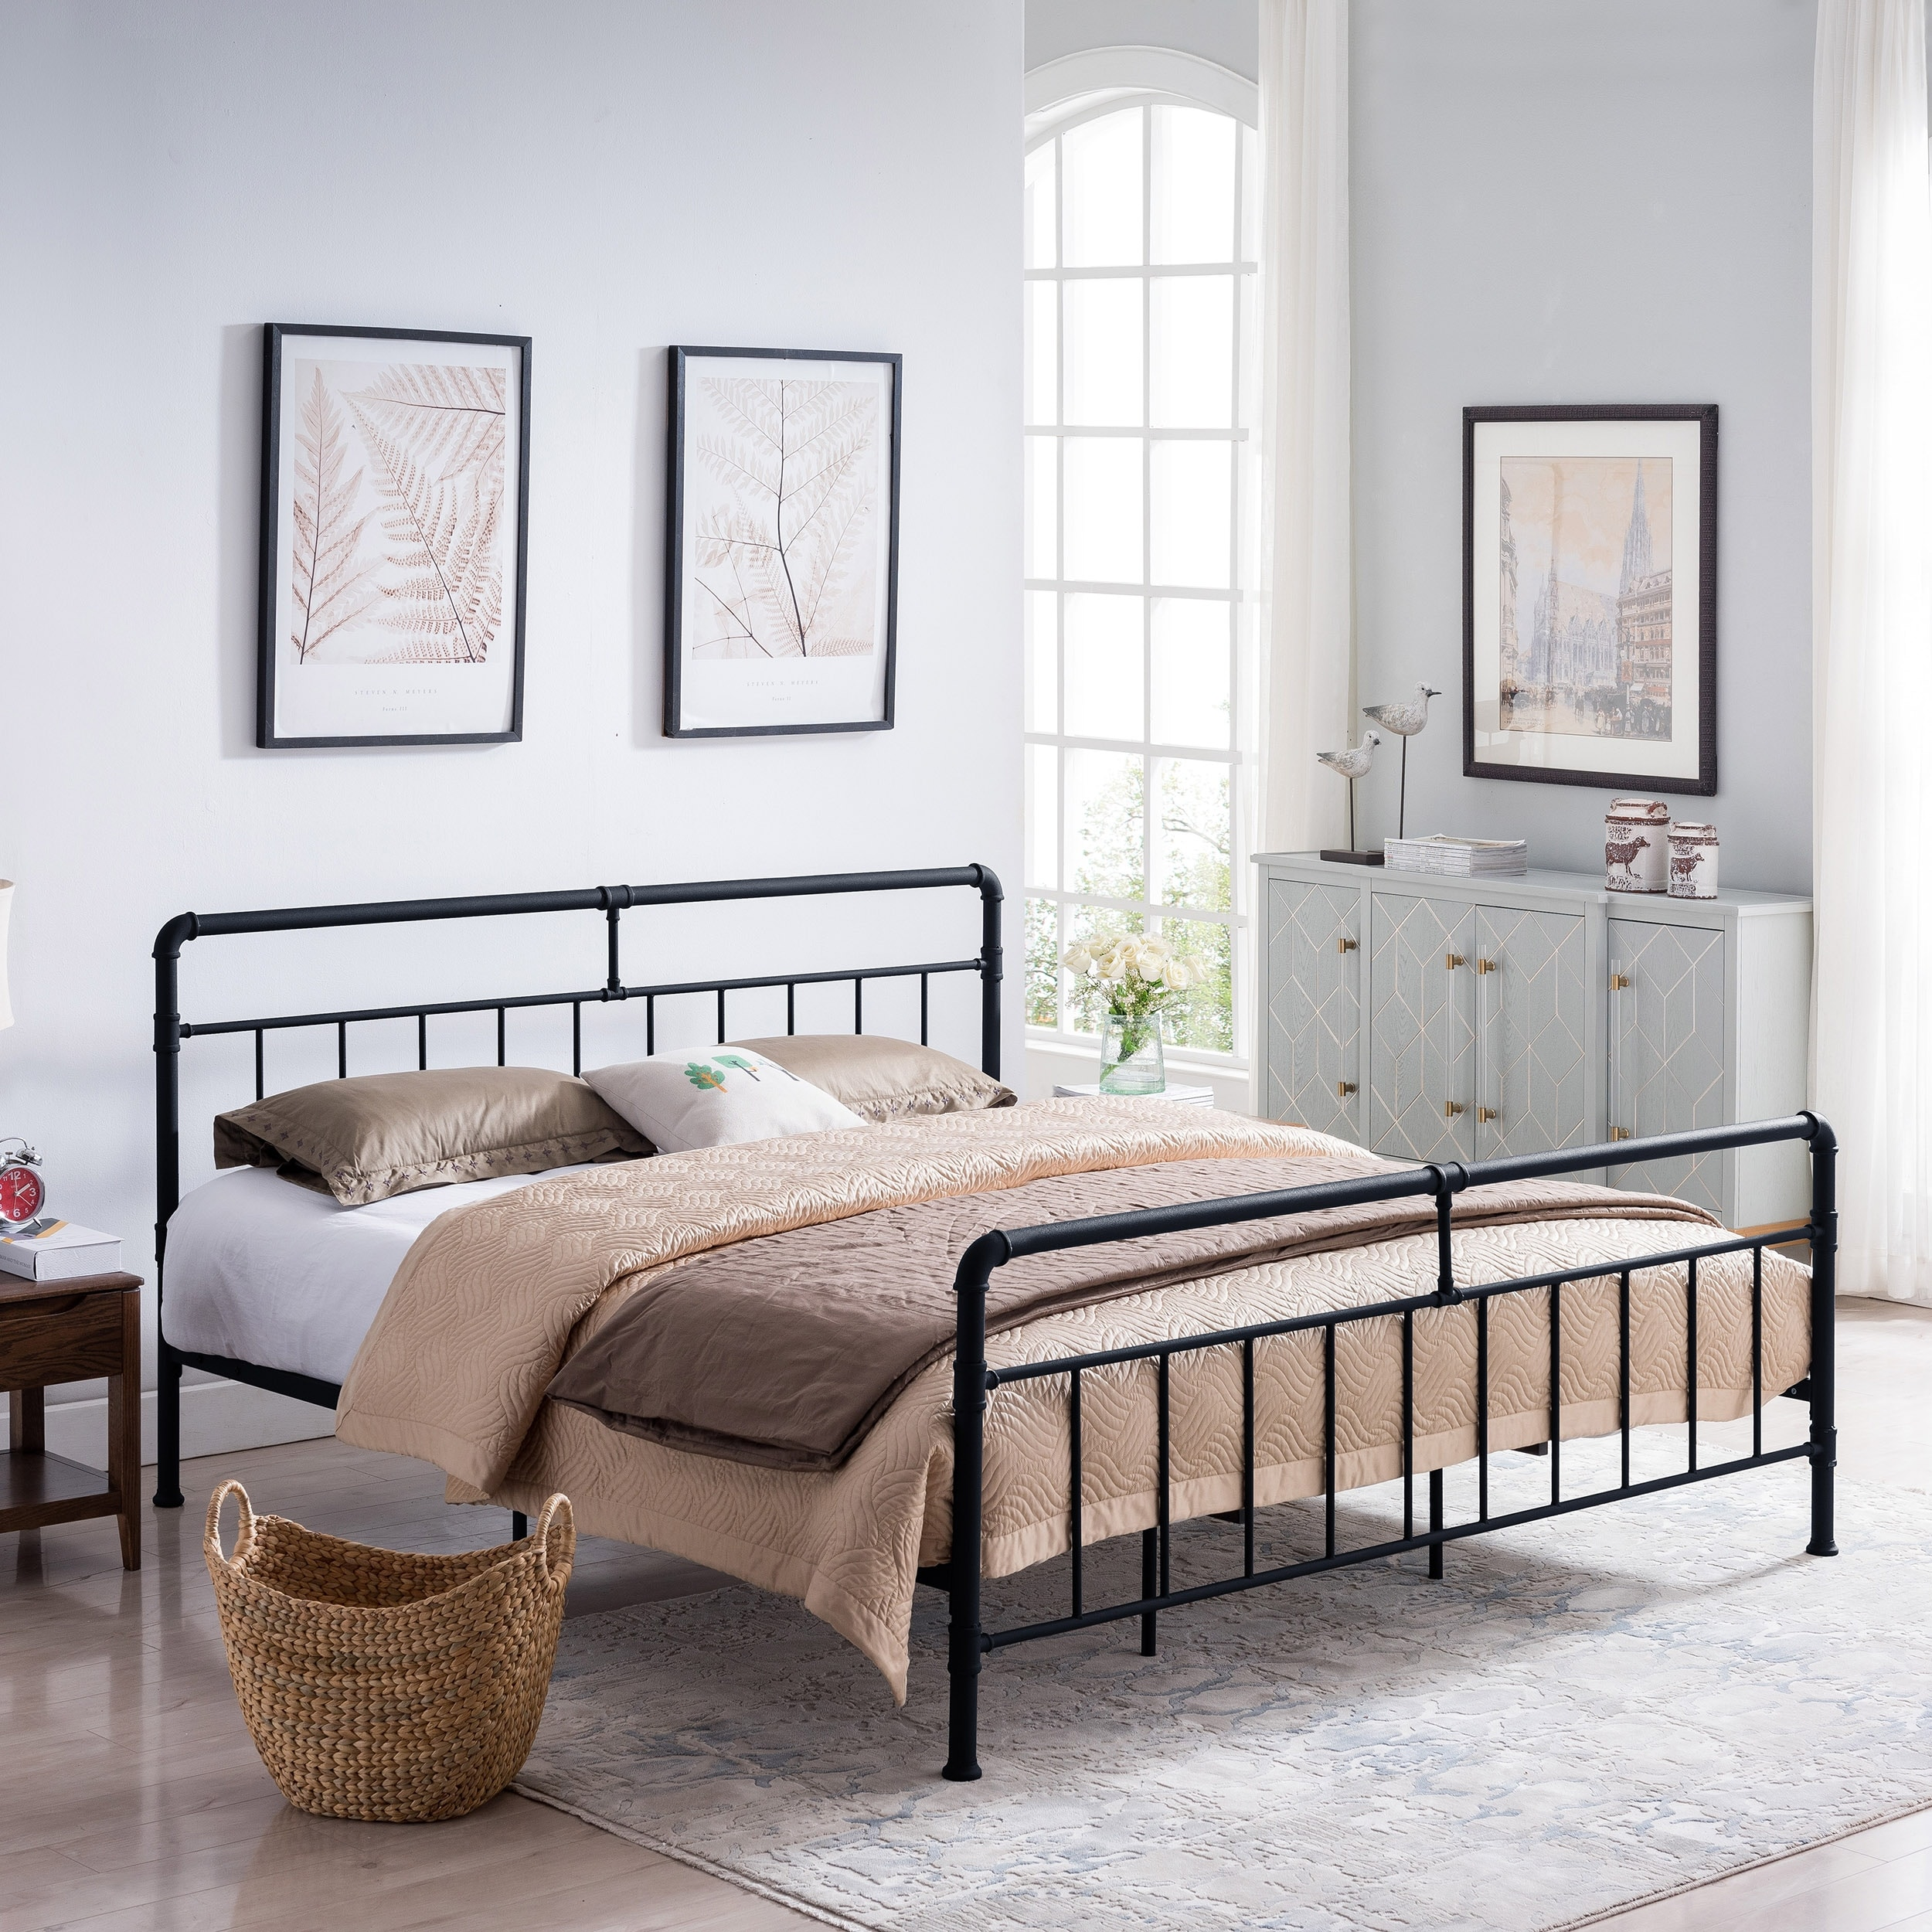 Mowry Industrial Queen Size Bed Frame By Christopher Knight Home On Sale Overstock 24115052 Hammered Copper